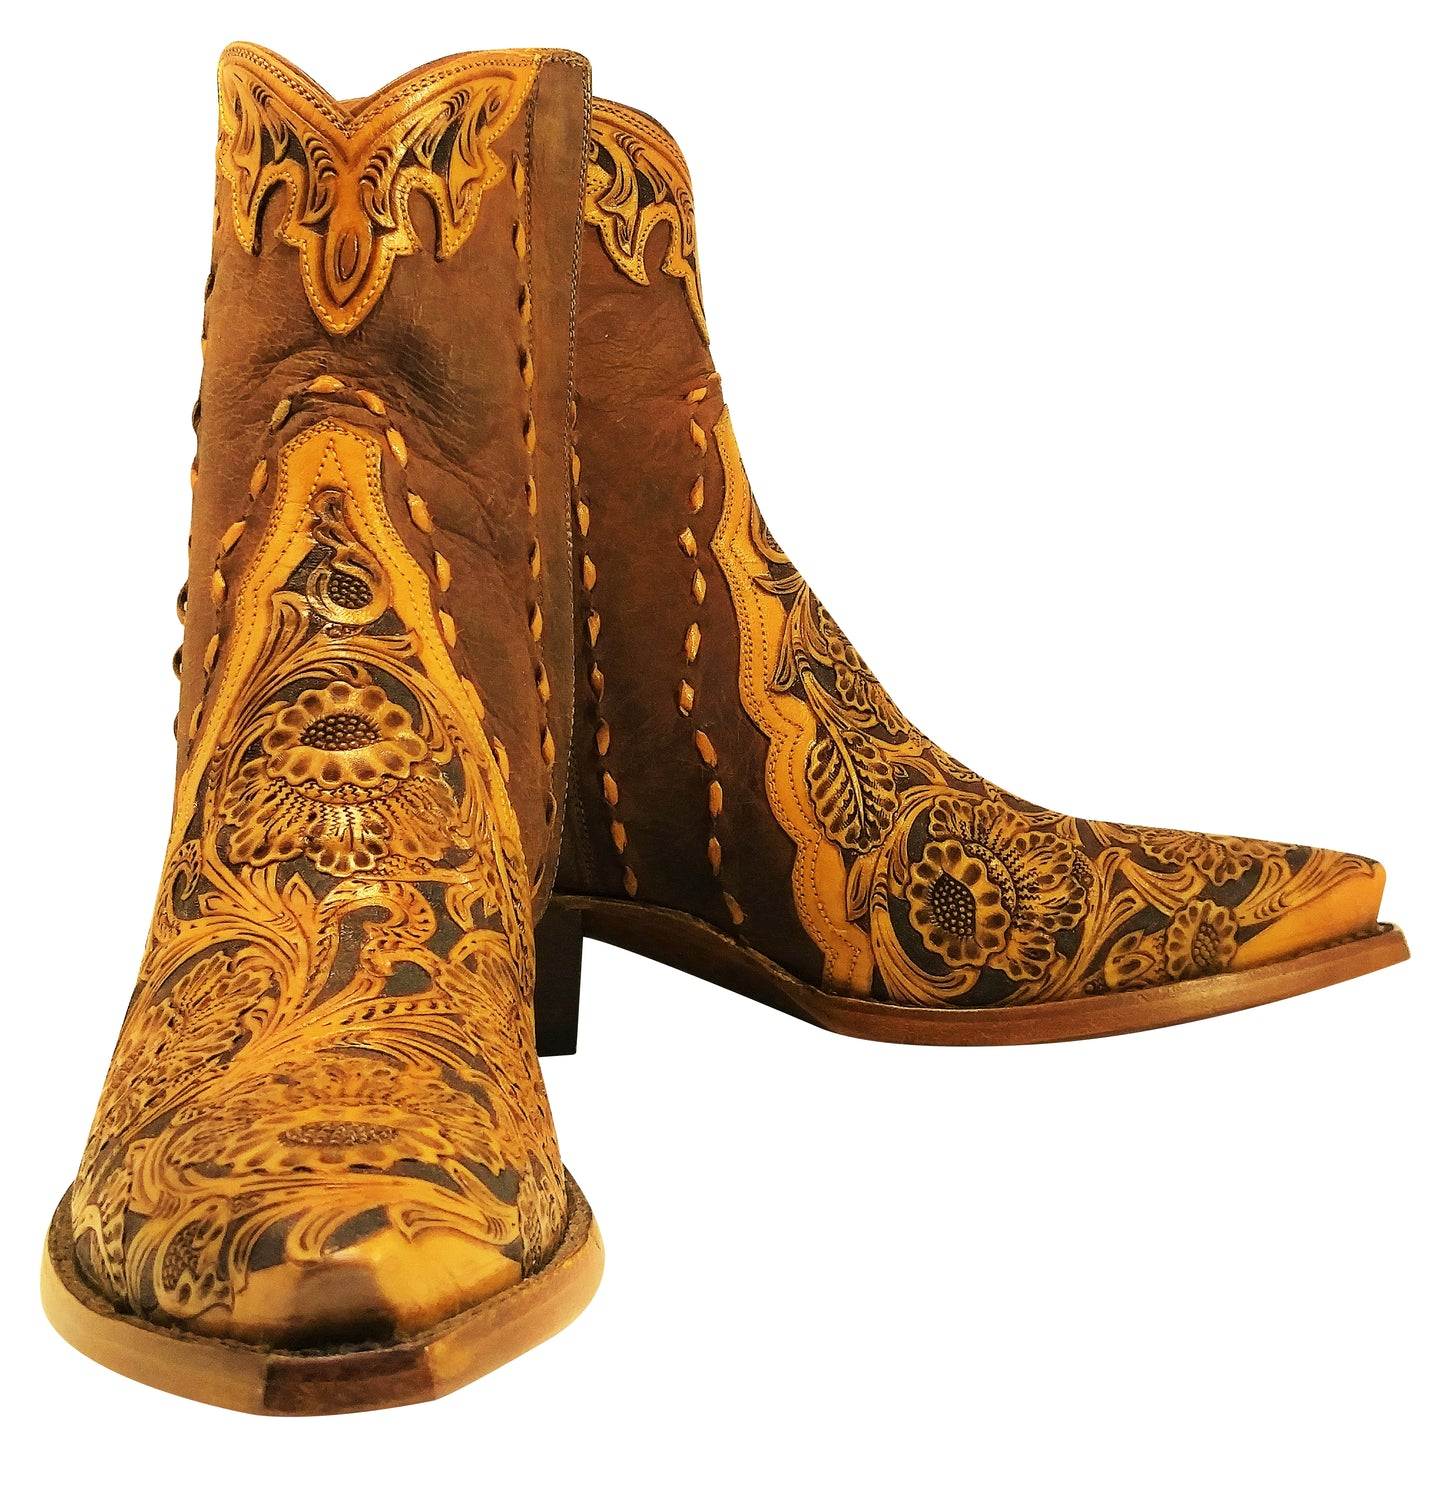 (TEMP) Hand Tooled Ankle Boots